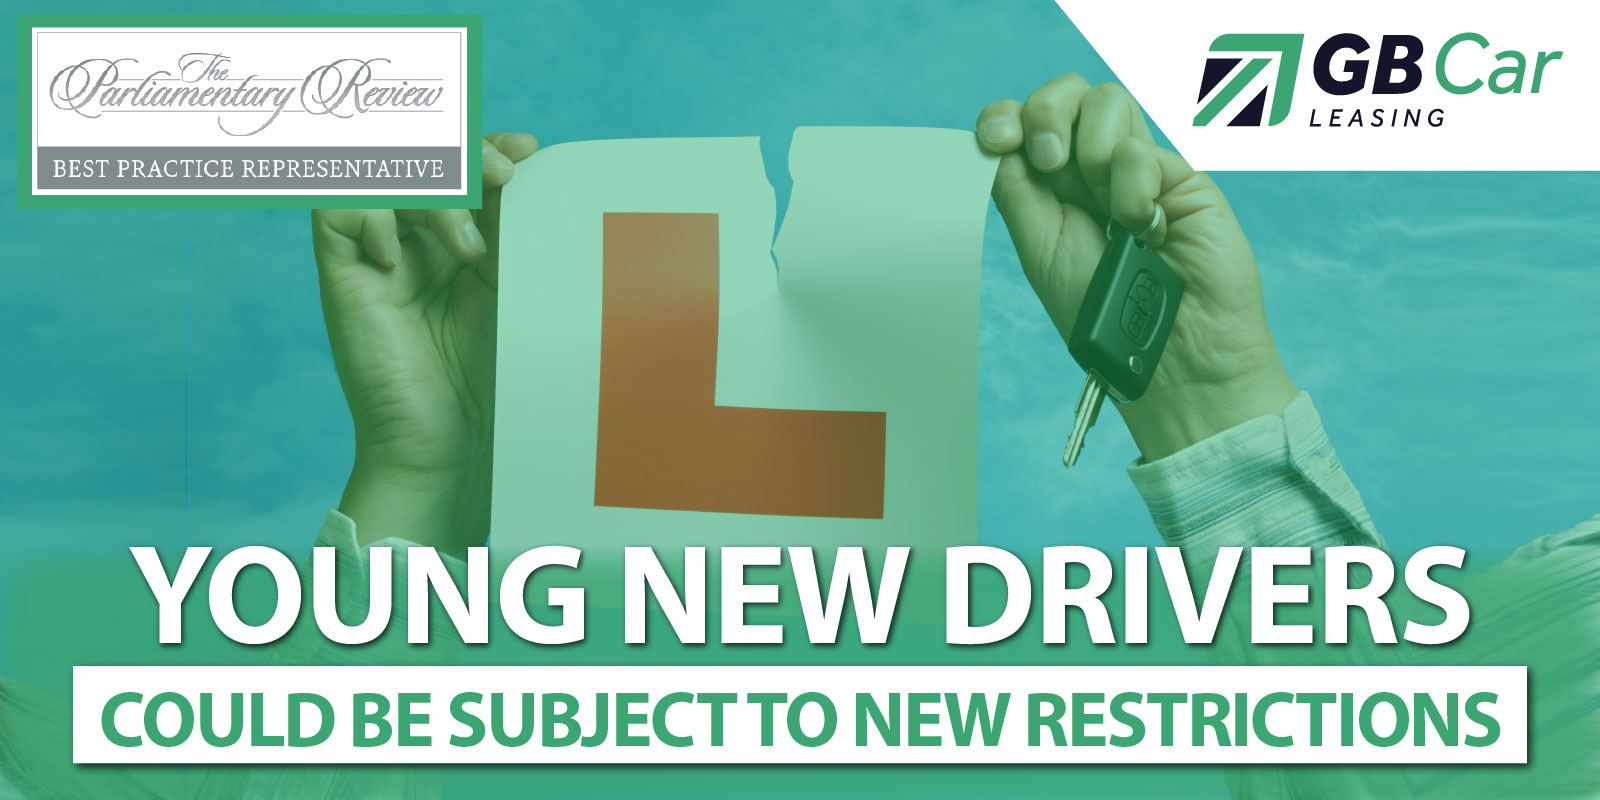 Young new drivers could face new restrictions